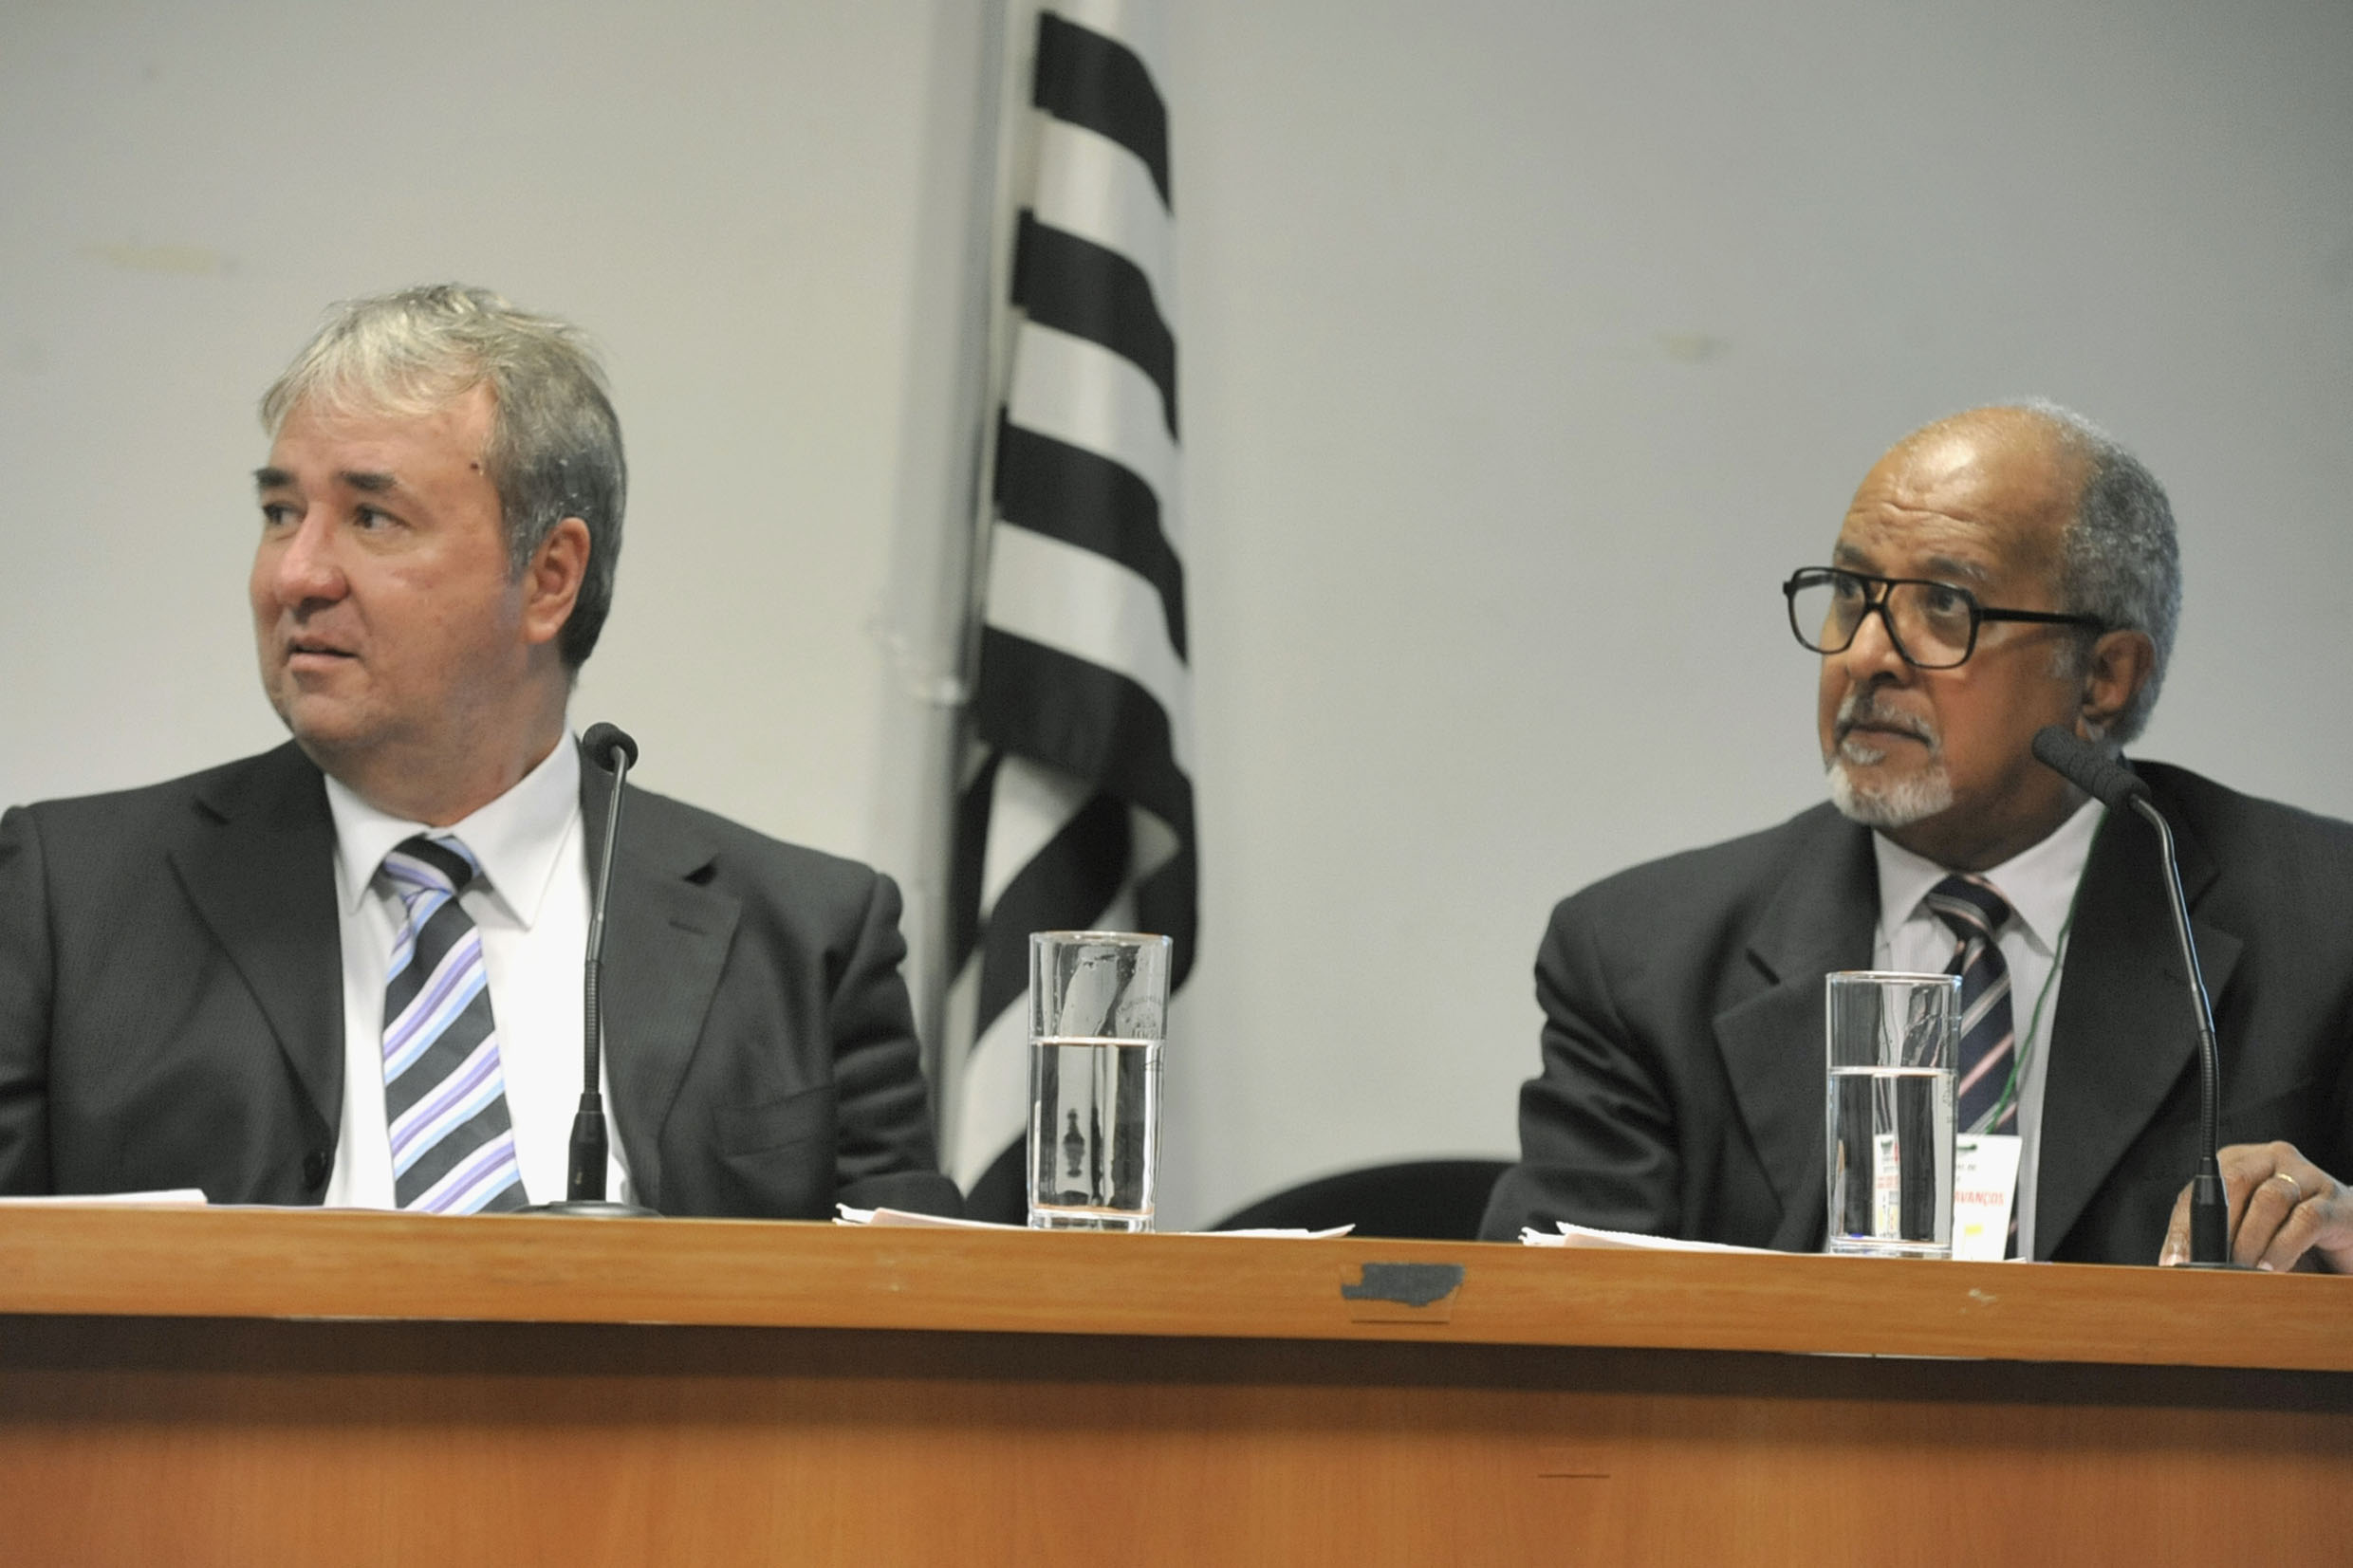 José Umberto Sverzut e Eusebio Leonel<a style='float:right' href='https://www3.al.sp.gov.br/repositorio/noticia/N-05-2019/fg235010.jpg' target=_blank><img src='/_img/material-file-download-white.png' width='14px' alt='Clique para baixar a imagem'></a>